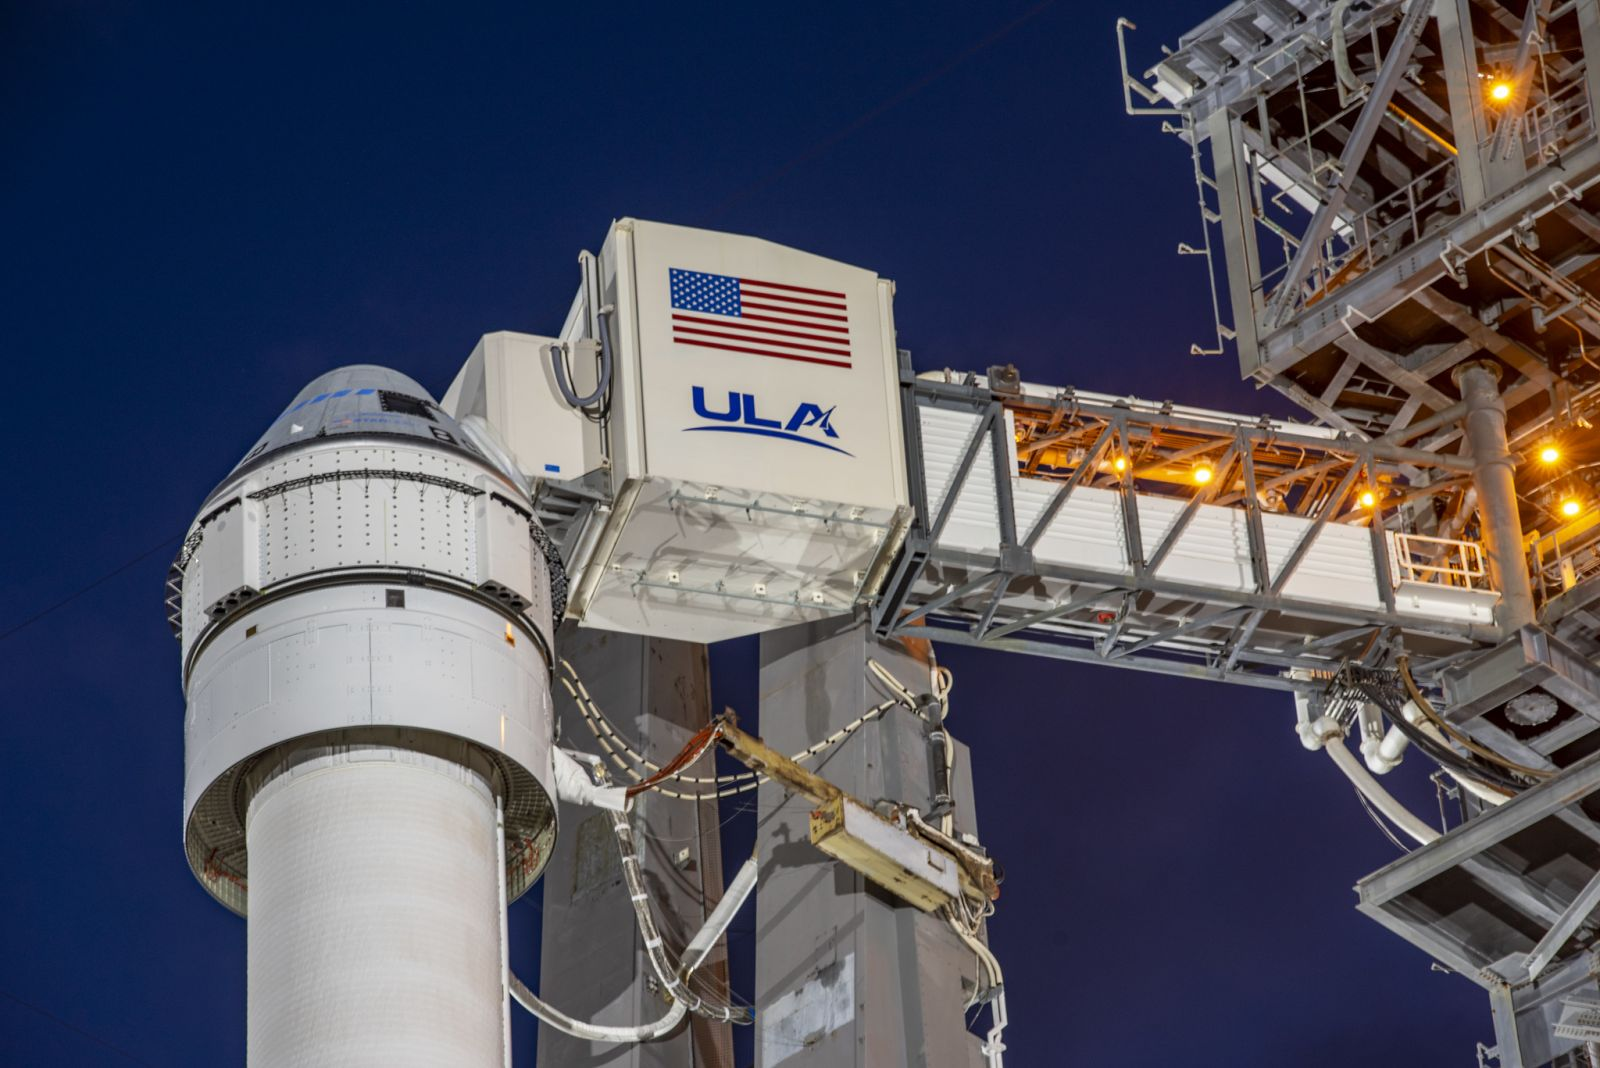 The launch vehicle adapter (LVA) that connects Starliner to the Atlas V N422 rocket can be seen in this image. Photo Credit: Boeing